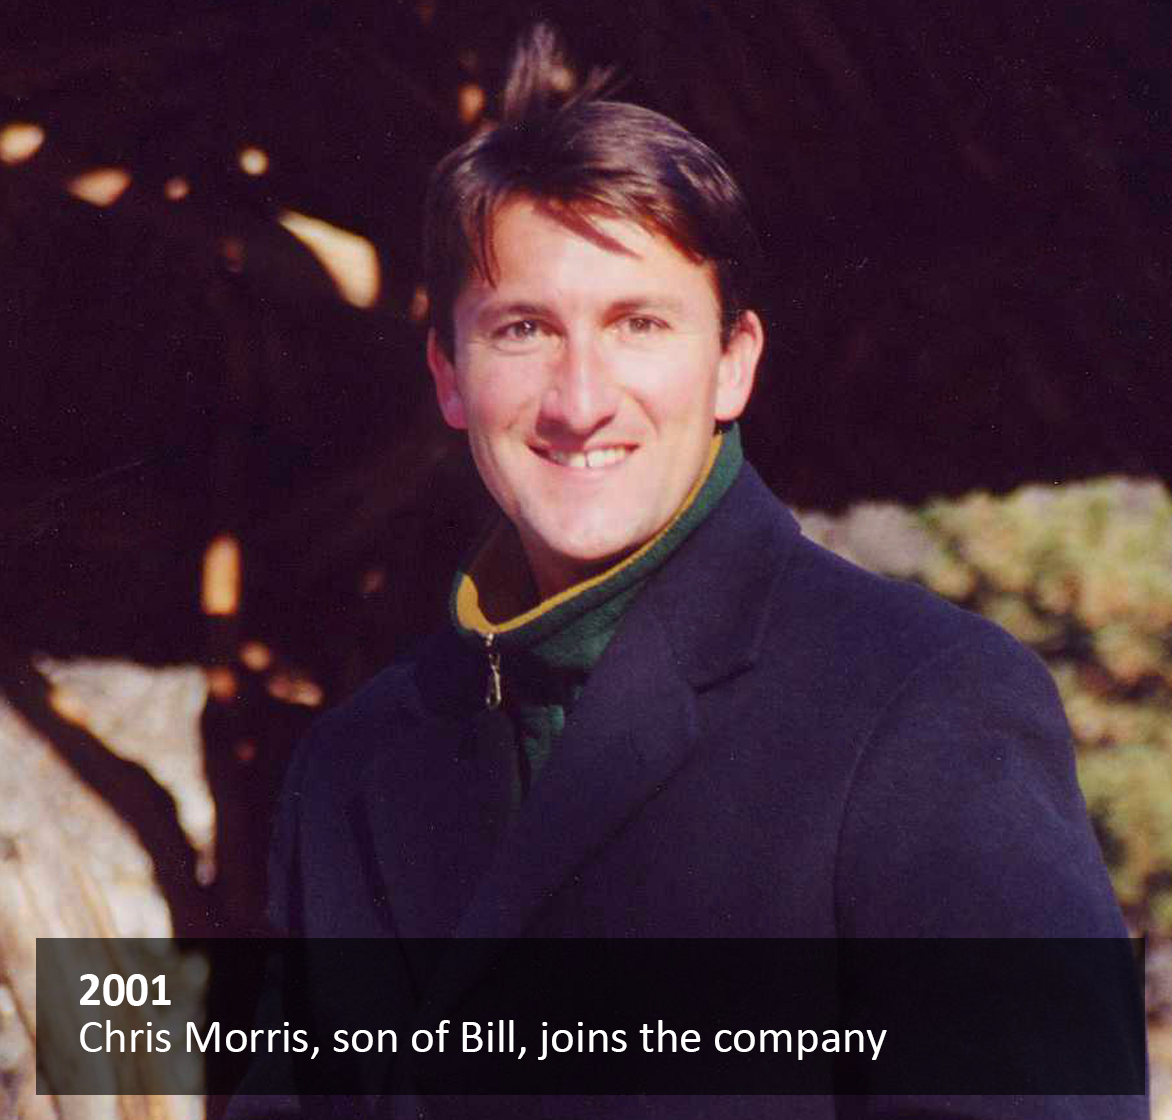 Chris Morris, son of Bill, joins the company